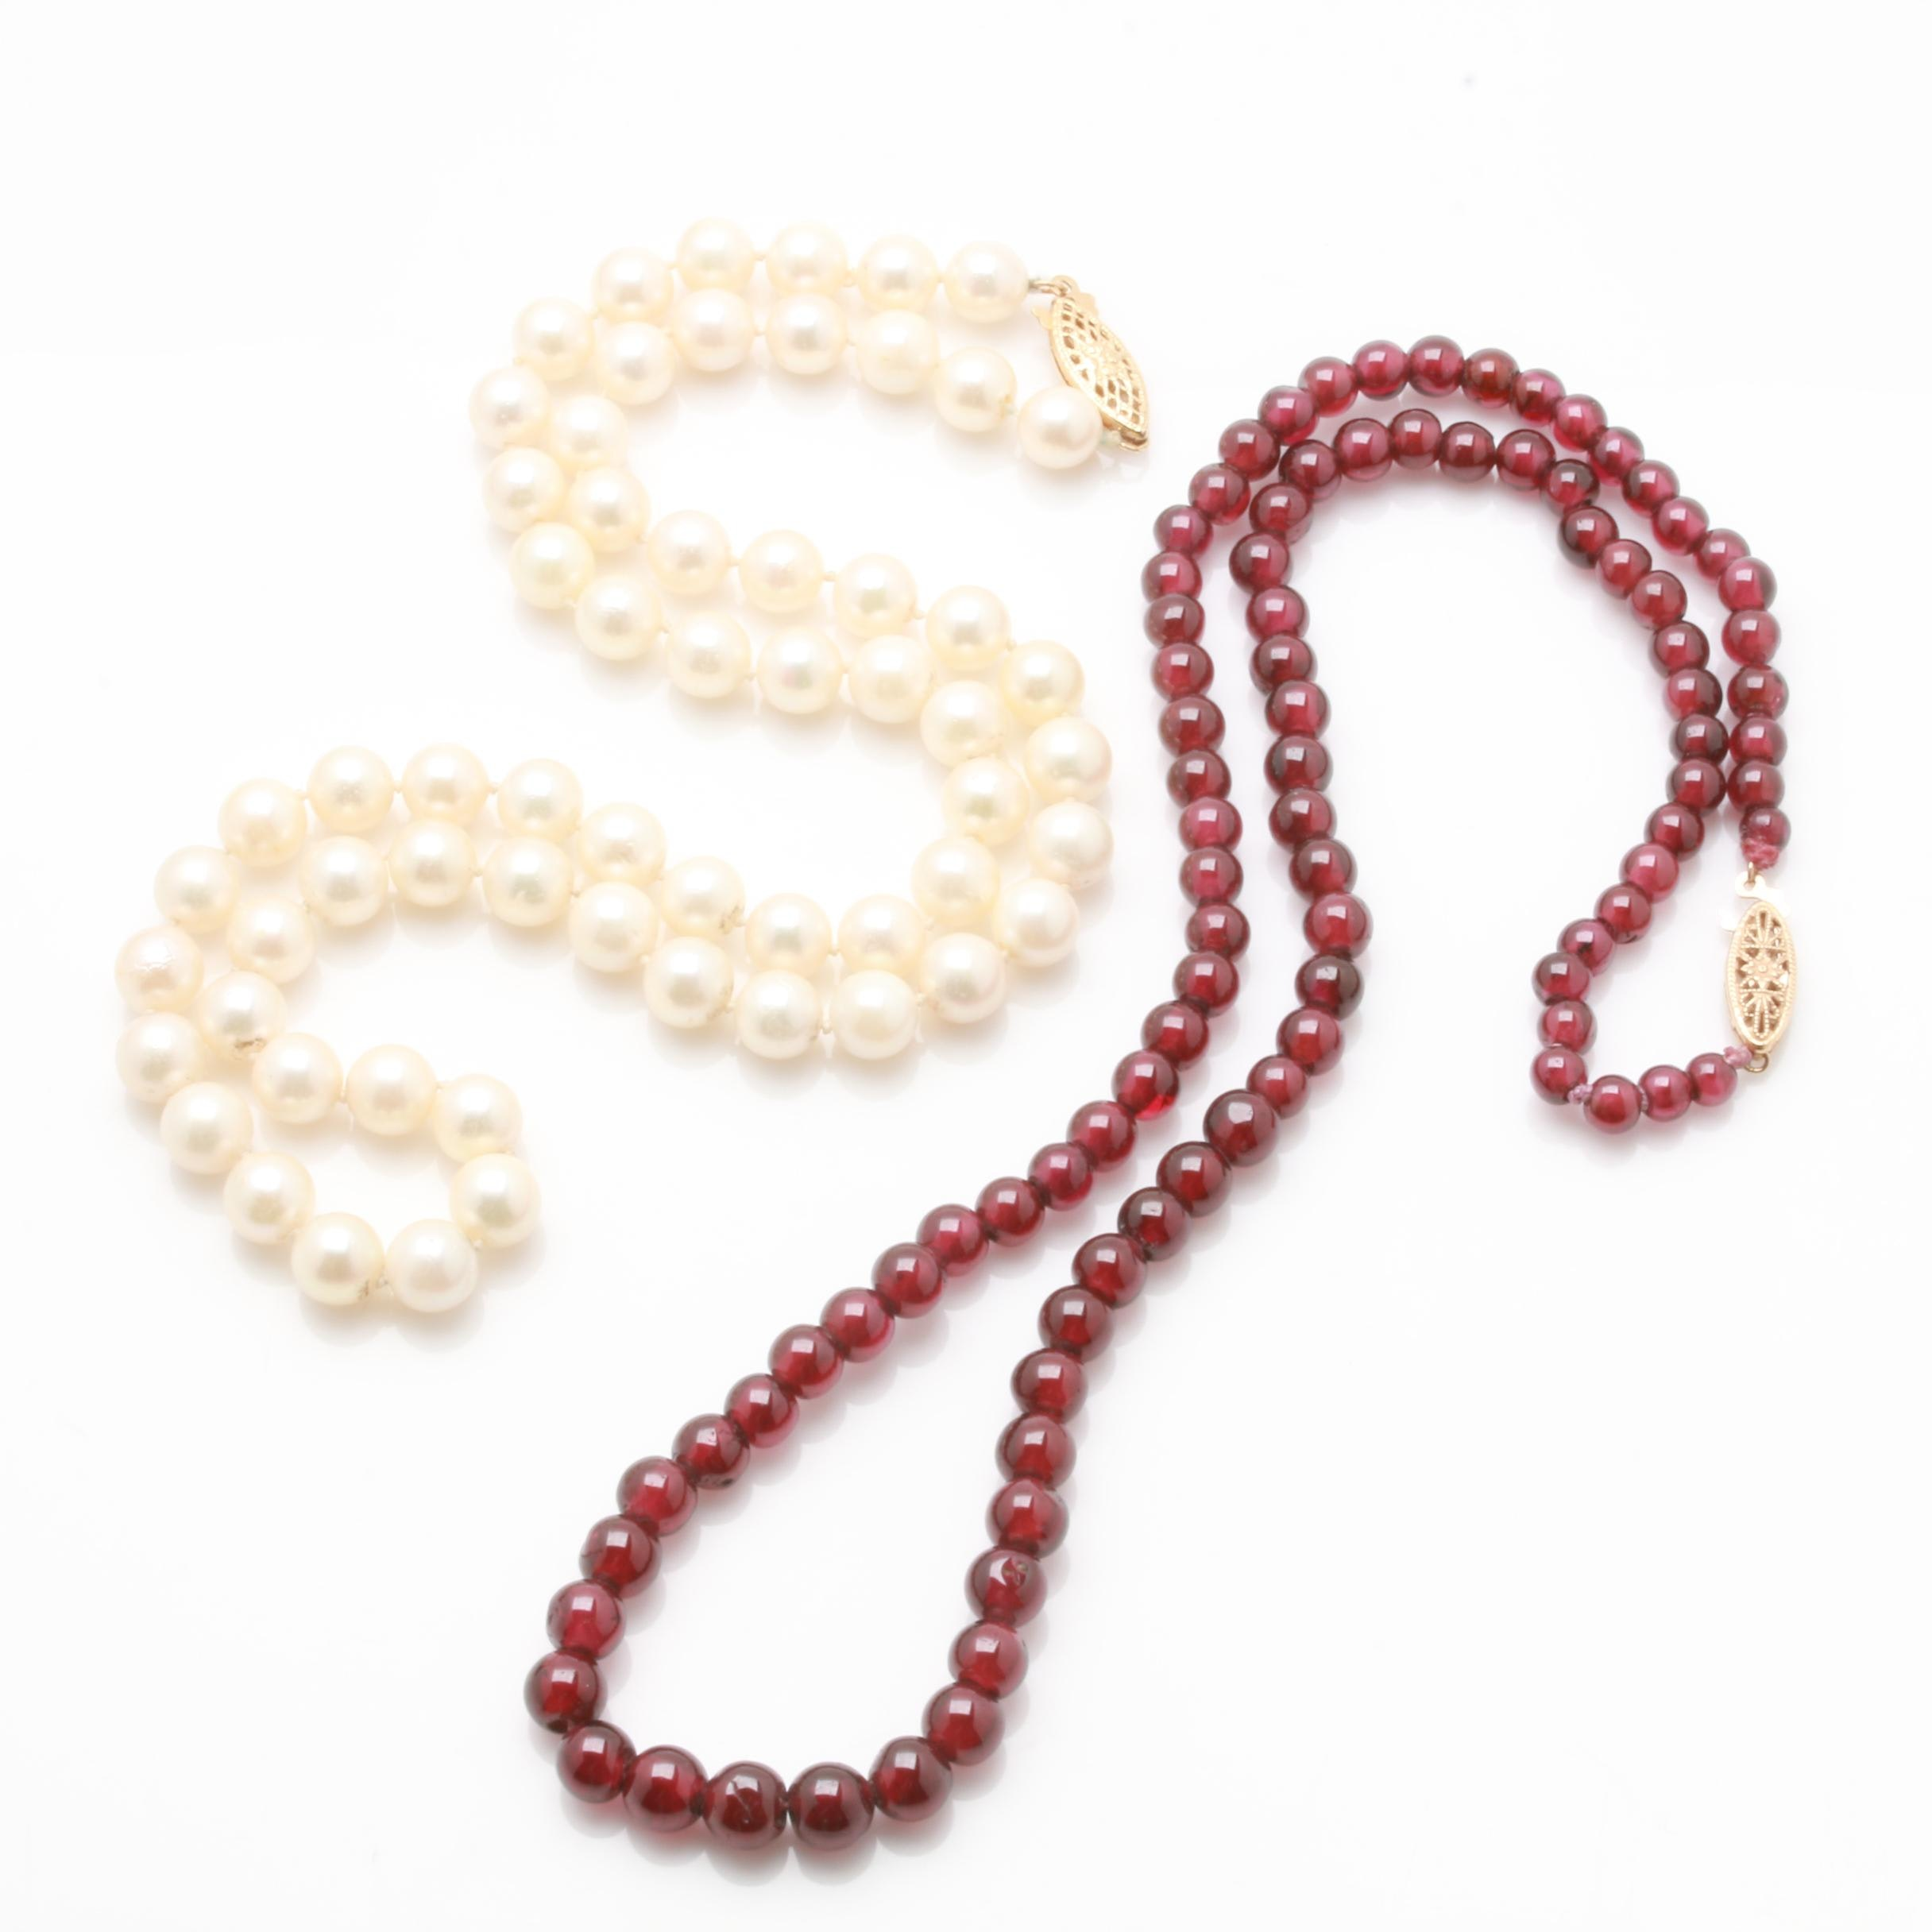 14K Yellow Gold Cultured Pearl and Rhodolite Garnet Necklaces